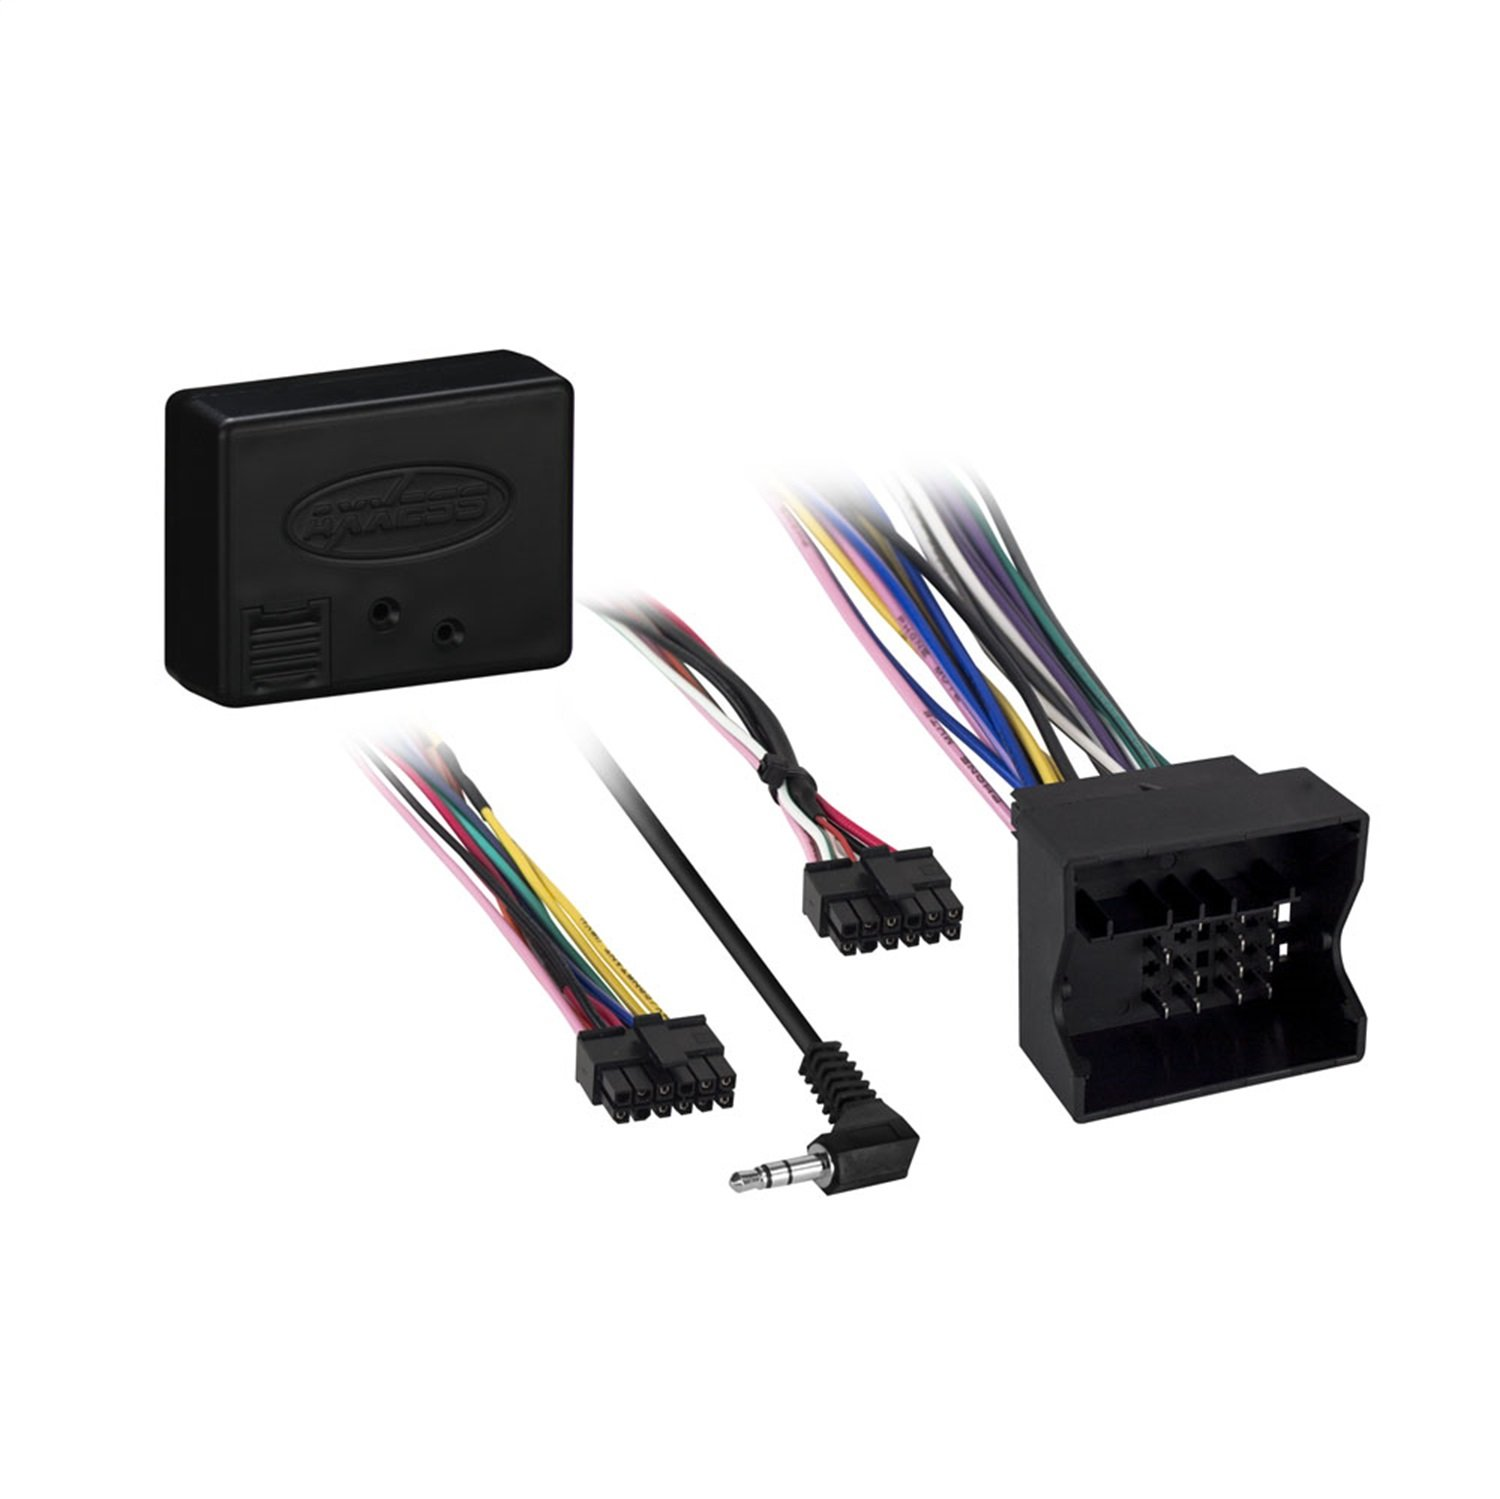 Axxess Xsvi 9003 Nav Non Amplified Onstar Harness To Retain 57 Vw Wiring Installation Accessory Power Electronics